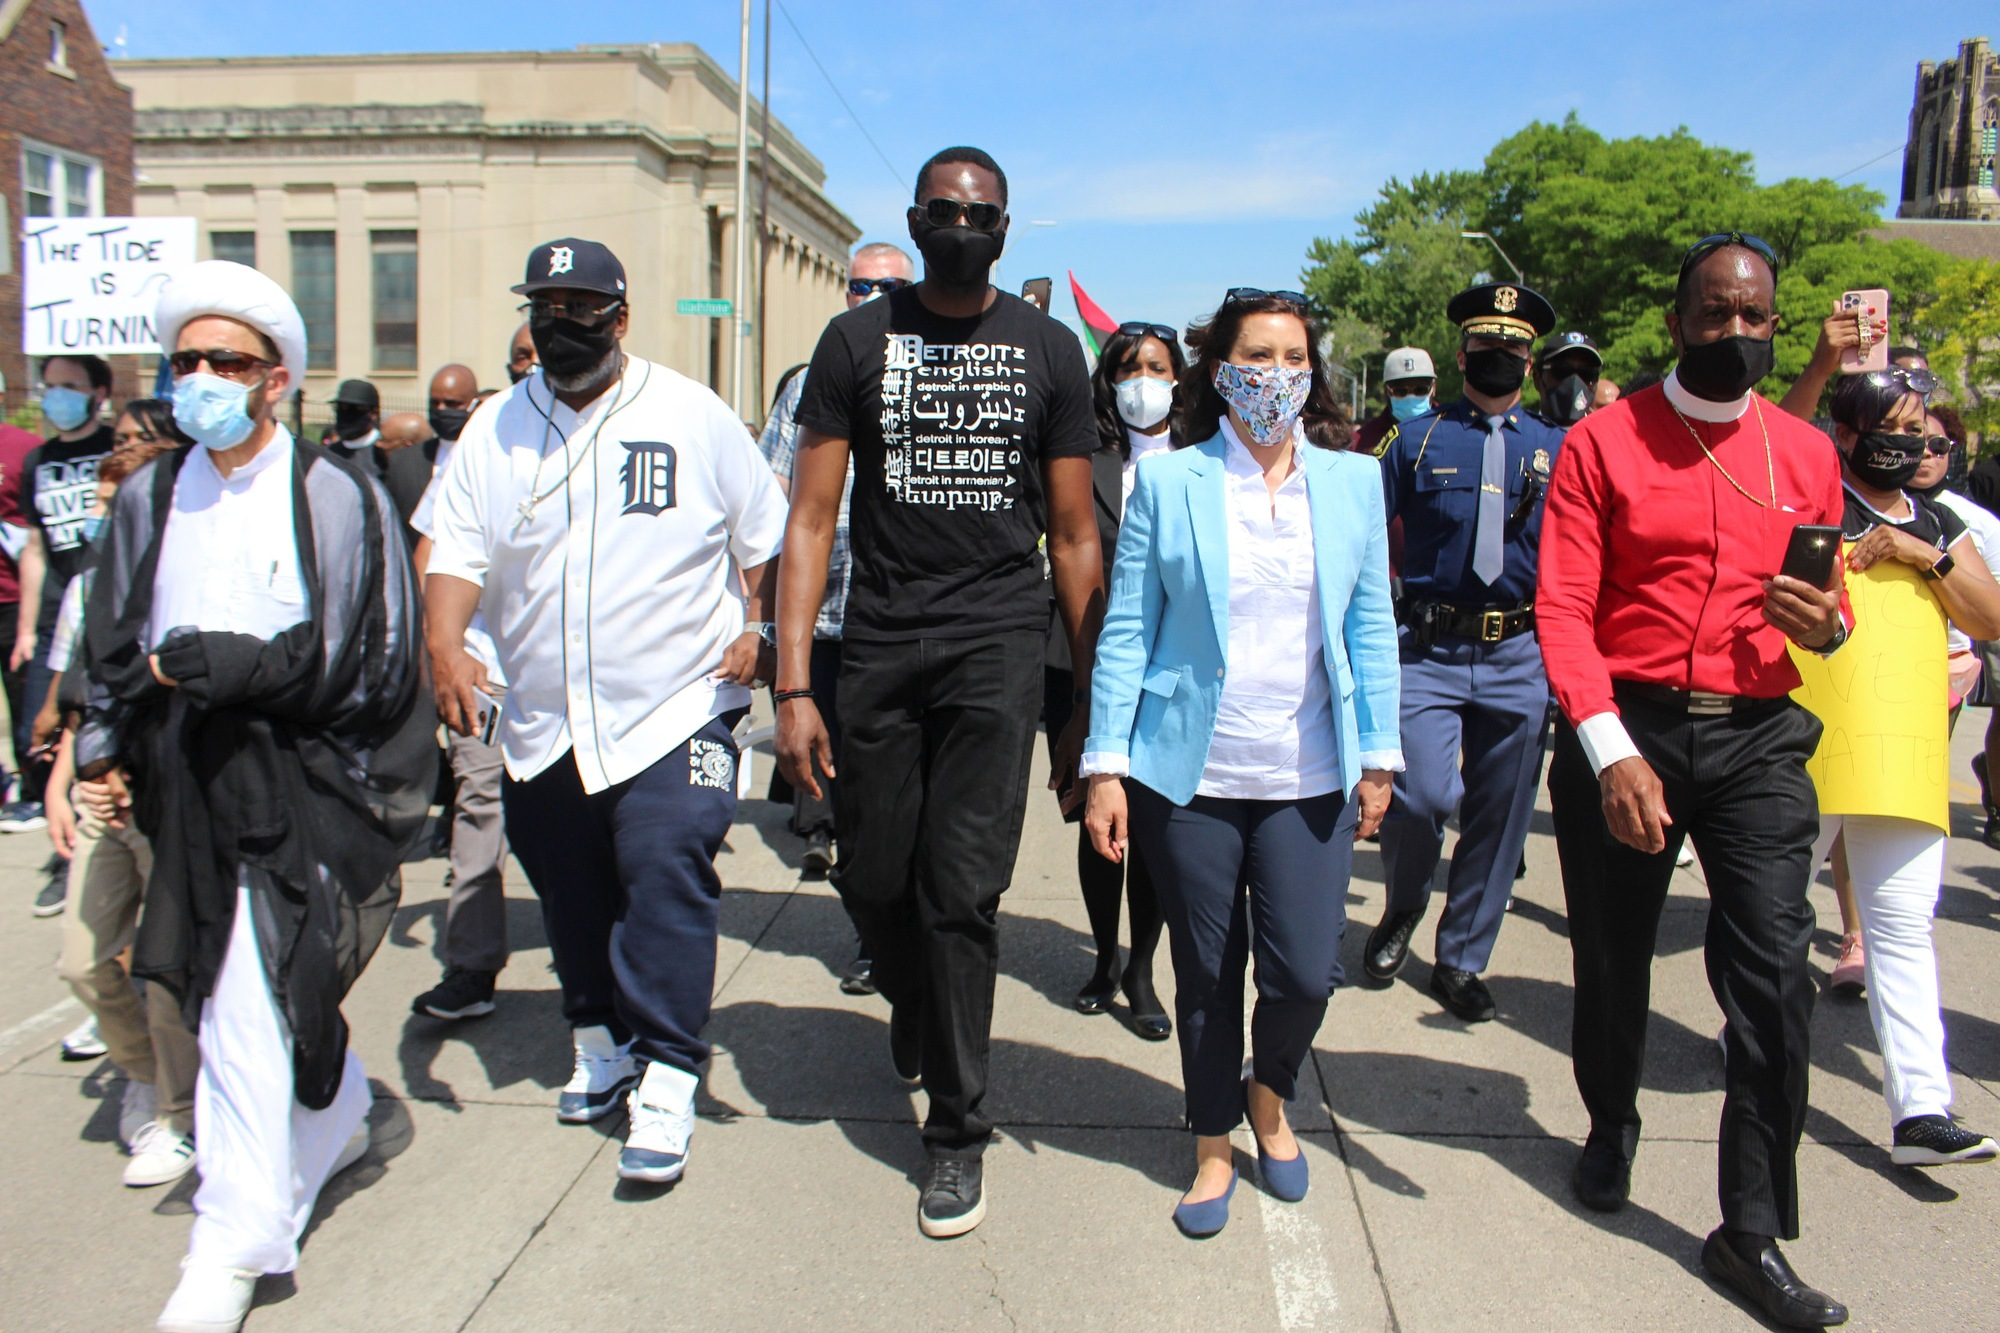 Whitmer Photos Governor Whitmer And Lt Governor Gilchrist Join Unity March In Detroit